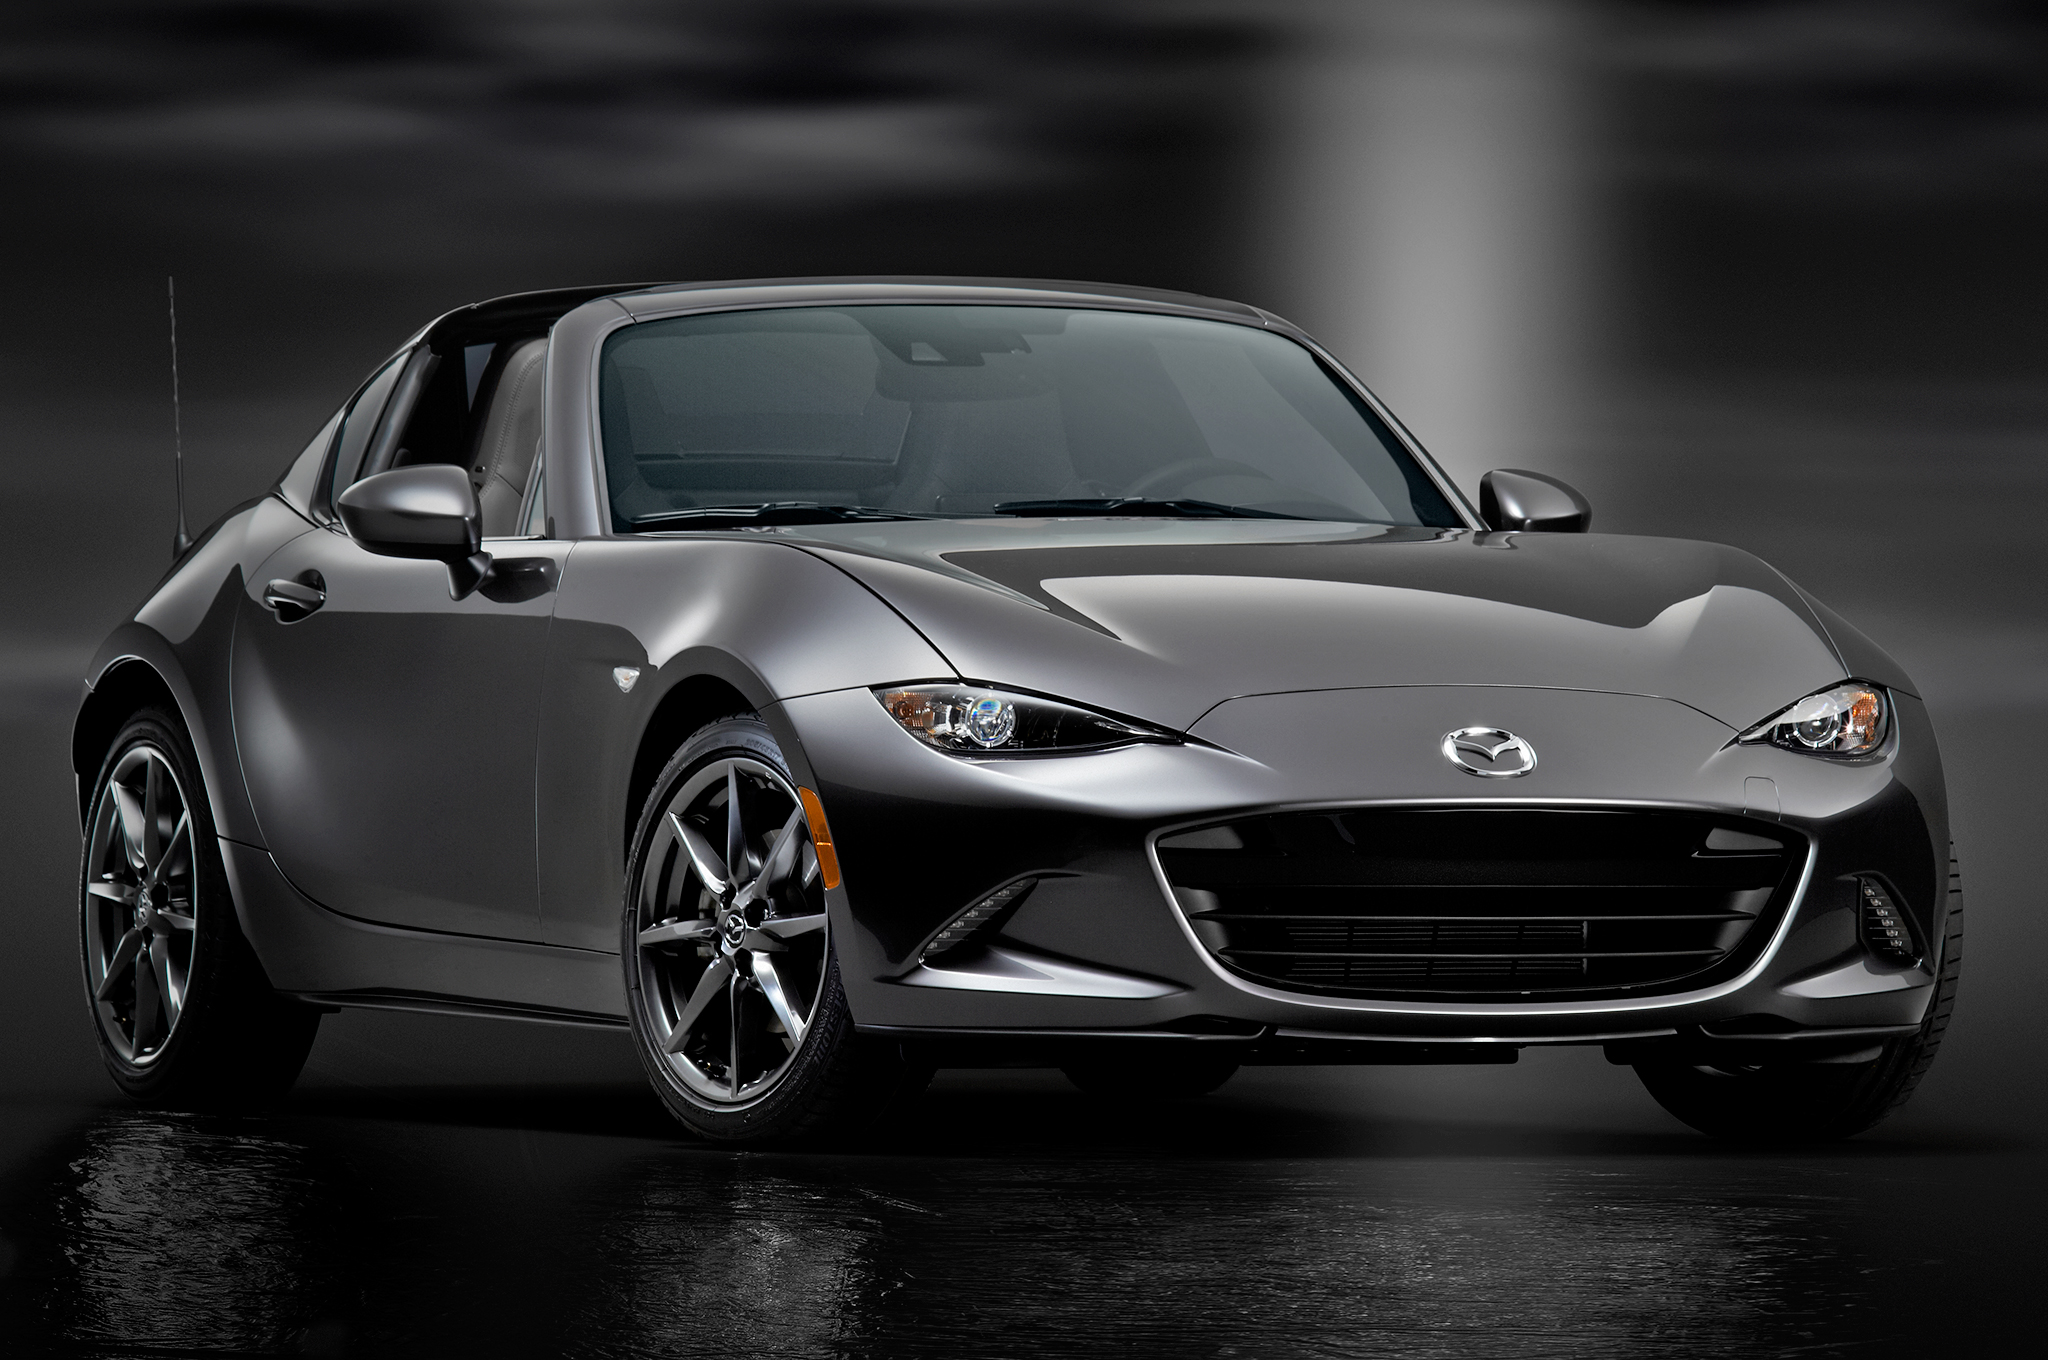 5 Things To Know About The 2017 Mazda MX-5 Miata RF